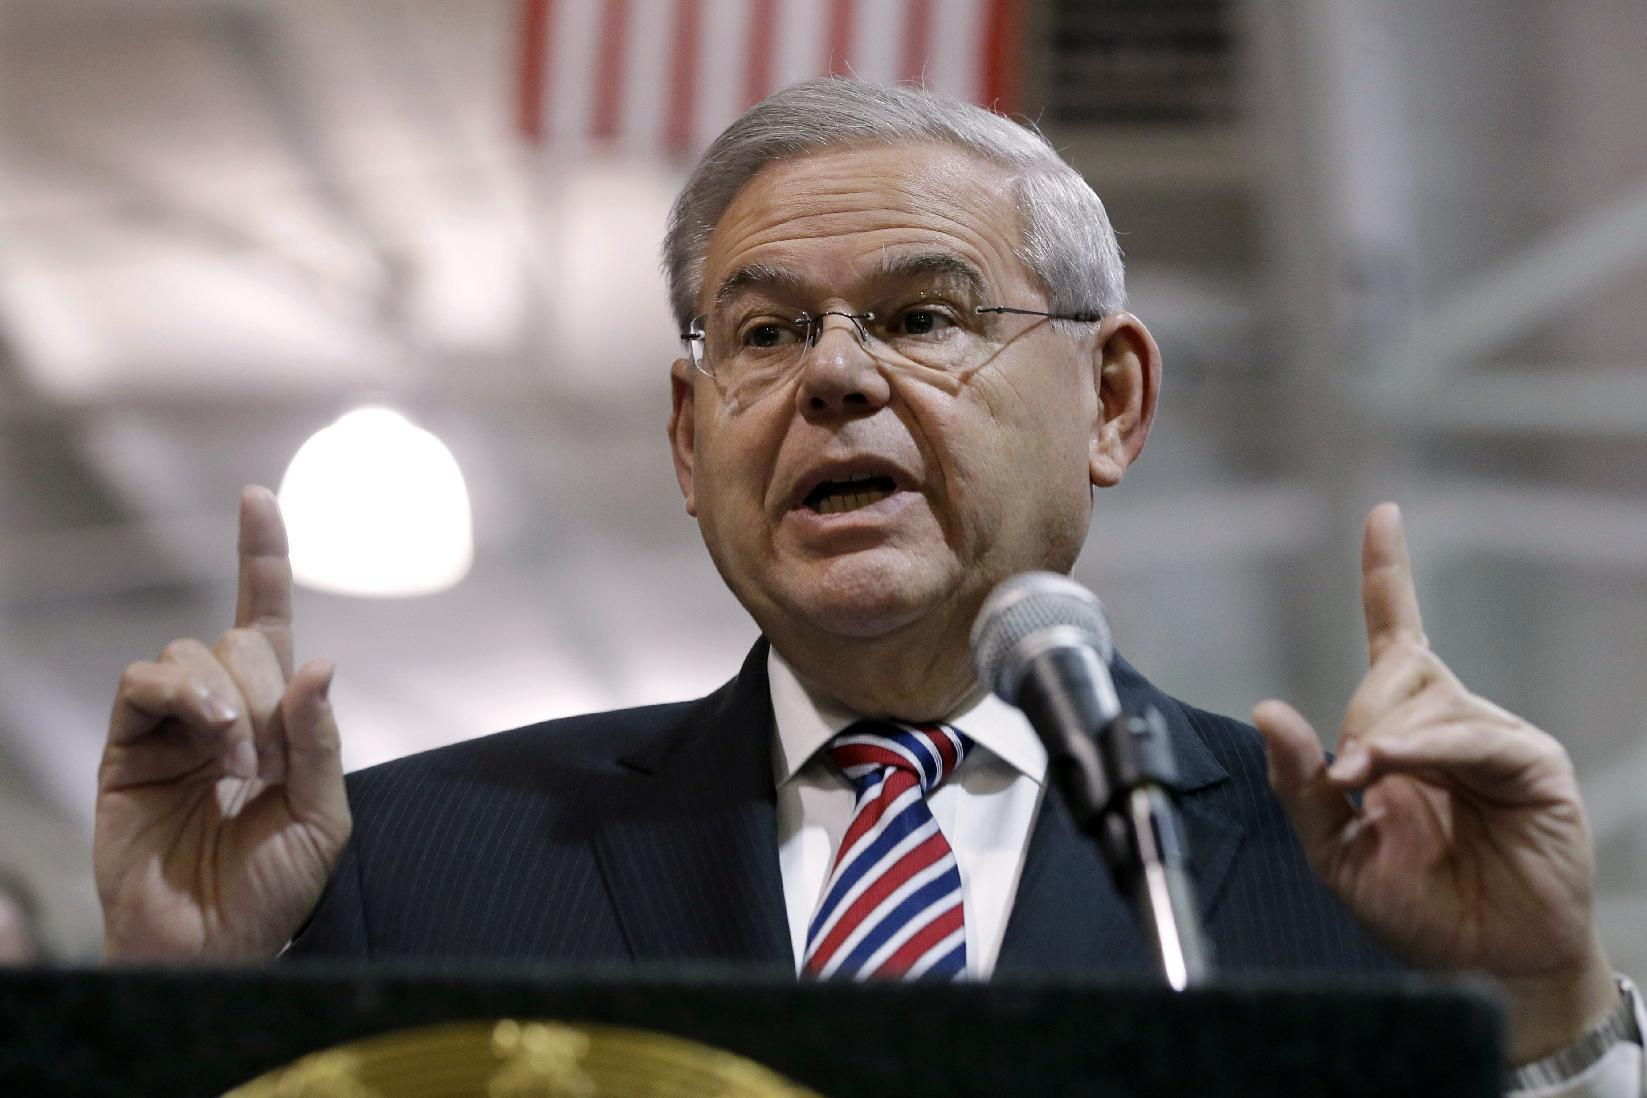 New Jersey Sen. Bob Menendez indicted on corruption charges